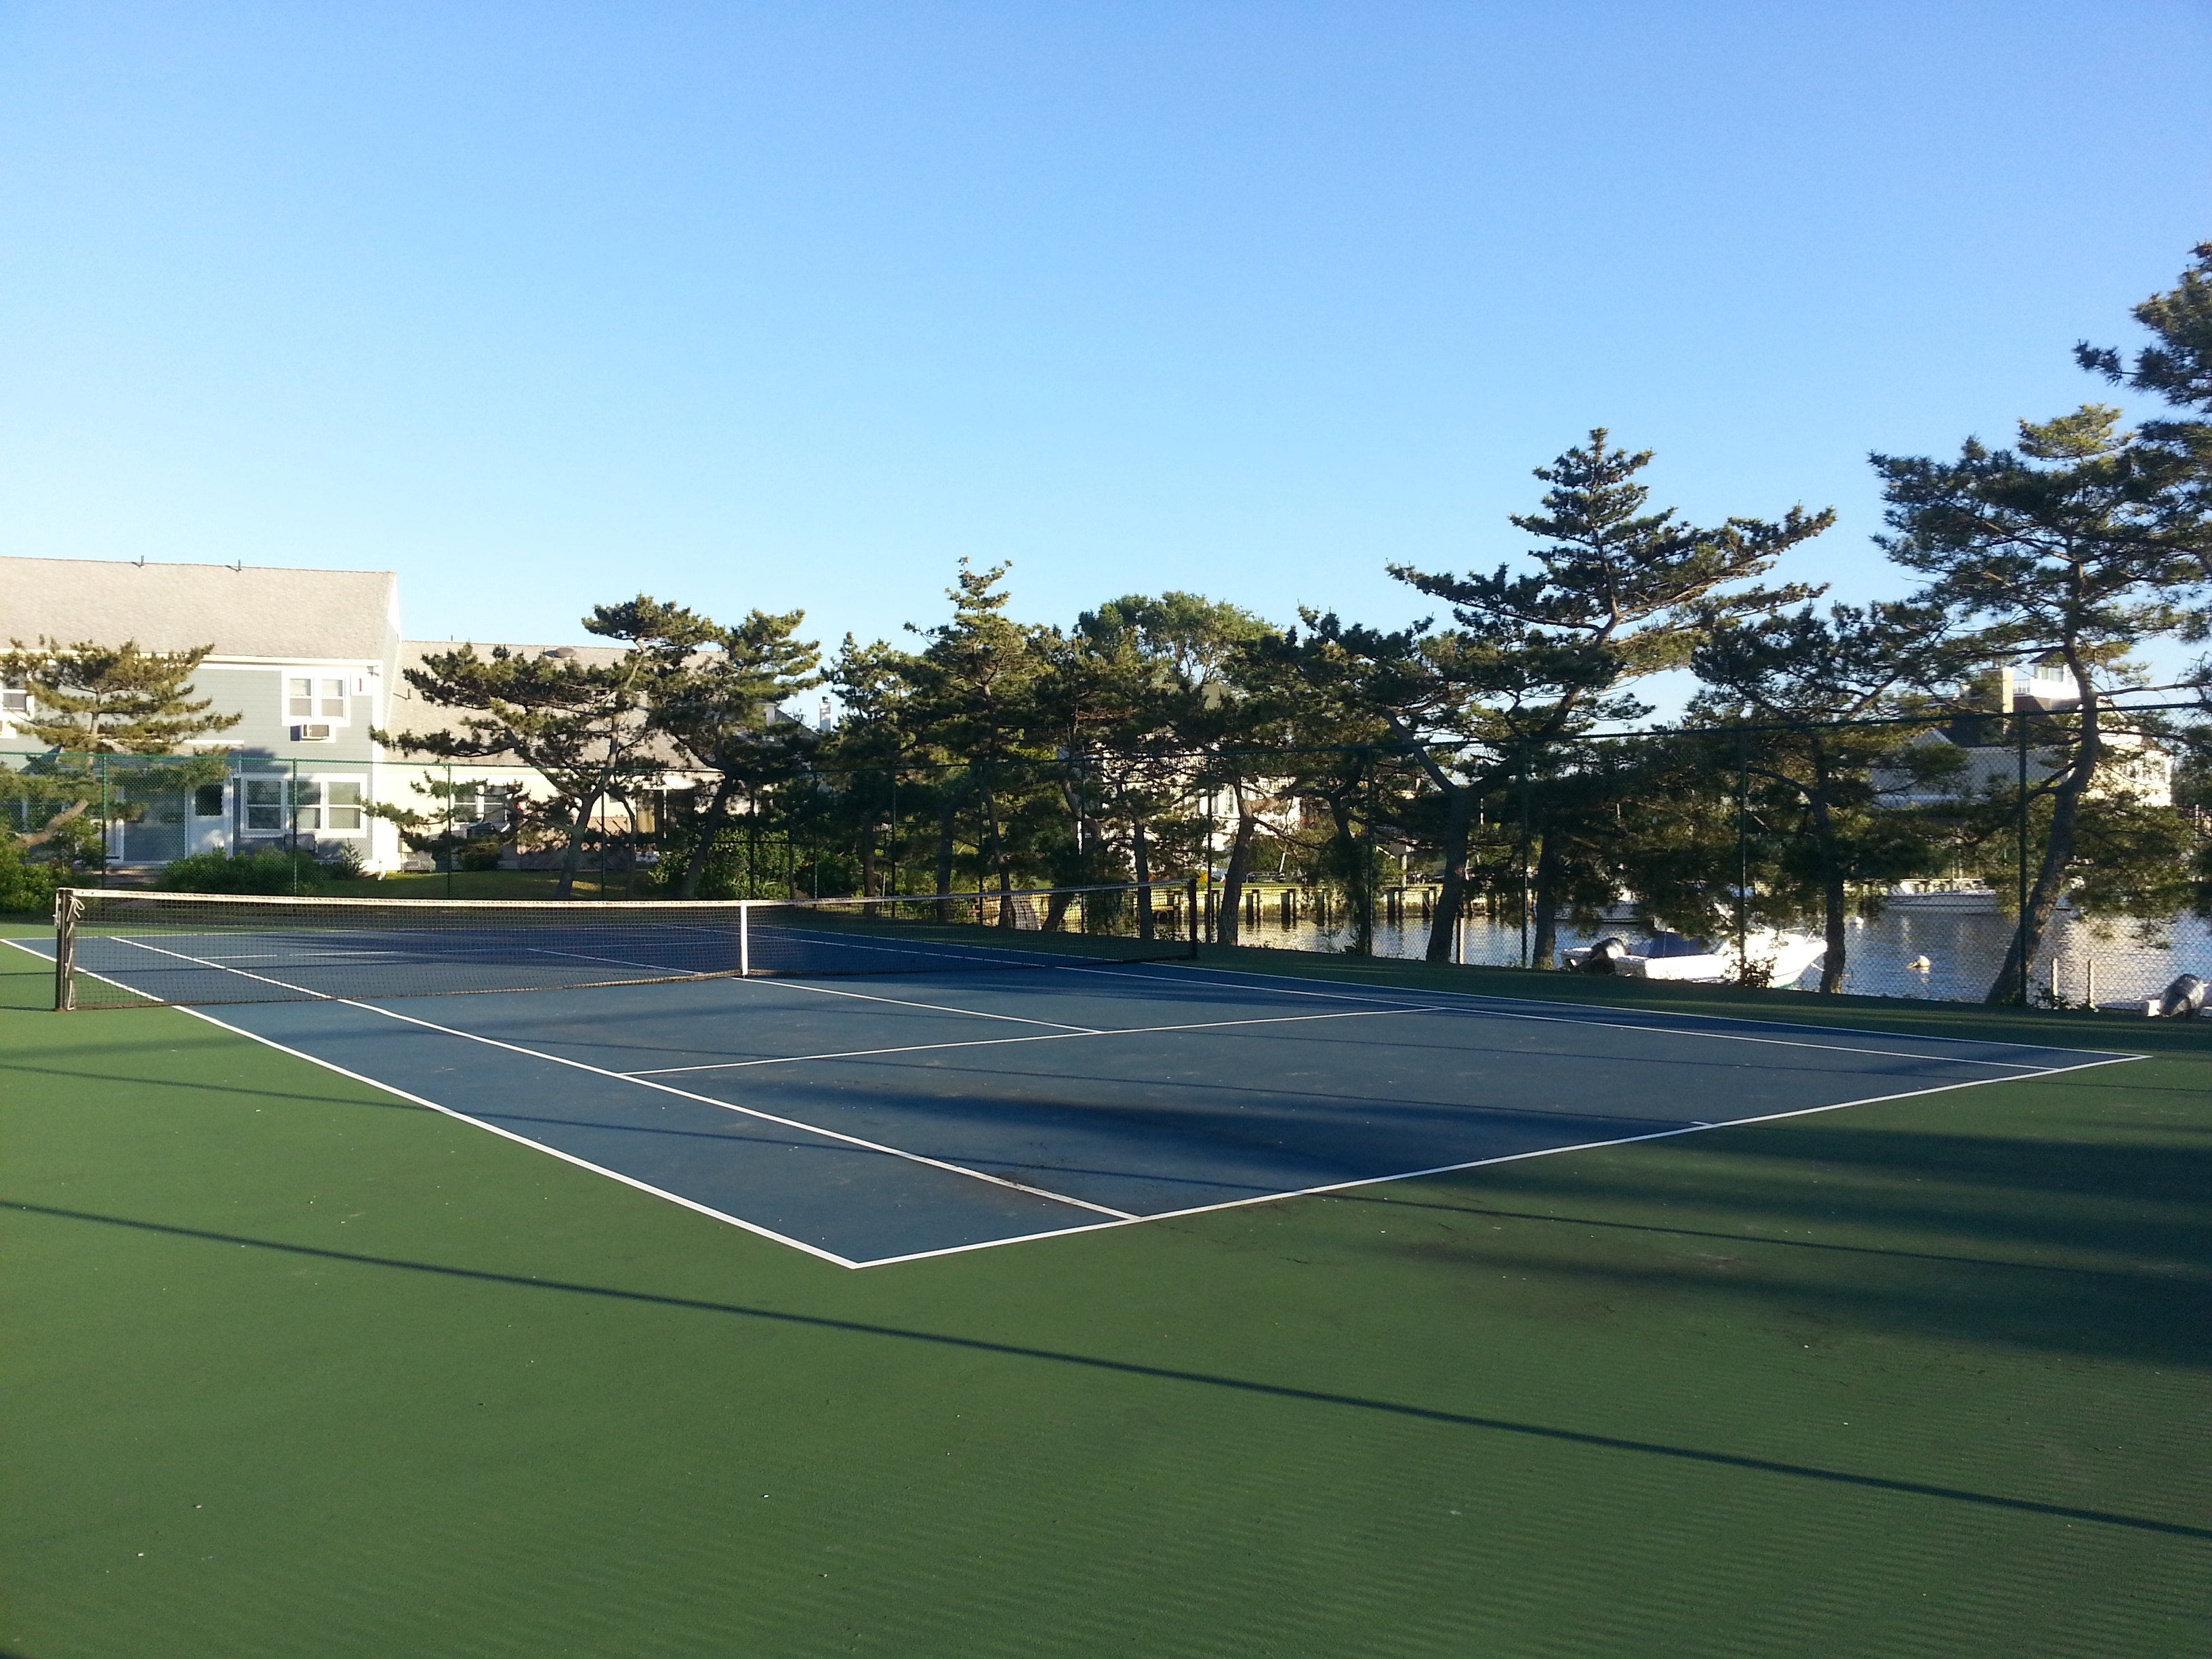 The Breakwater Cove tennis courts is next to the river, making it a cooler place to play.